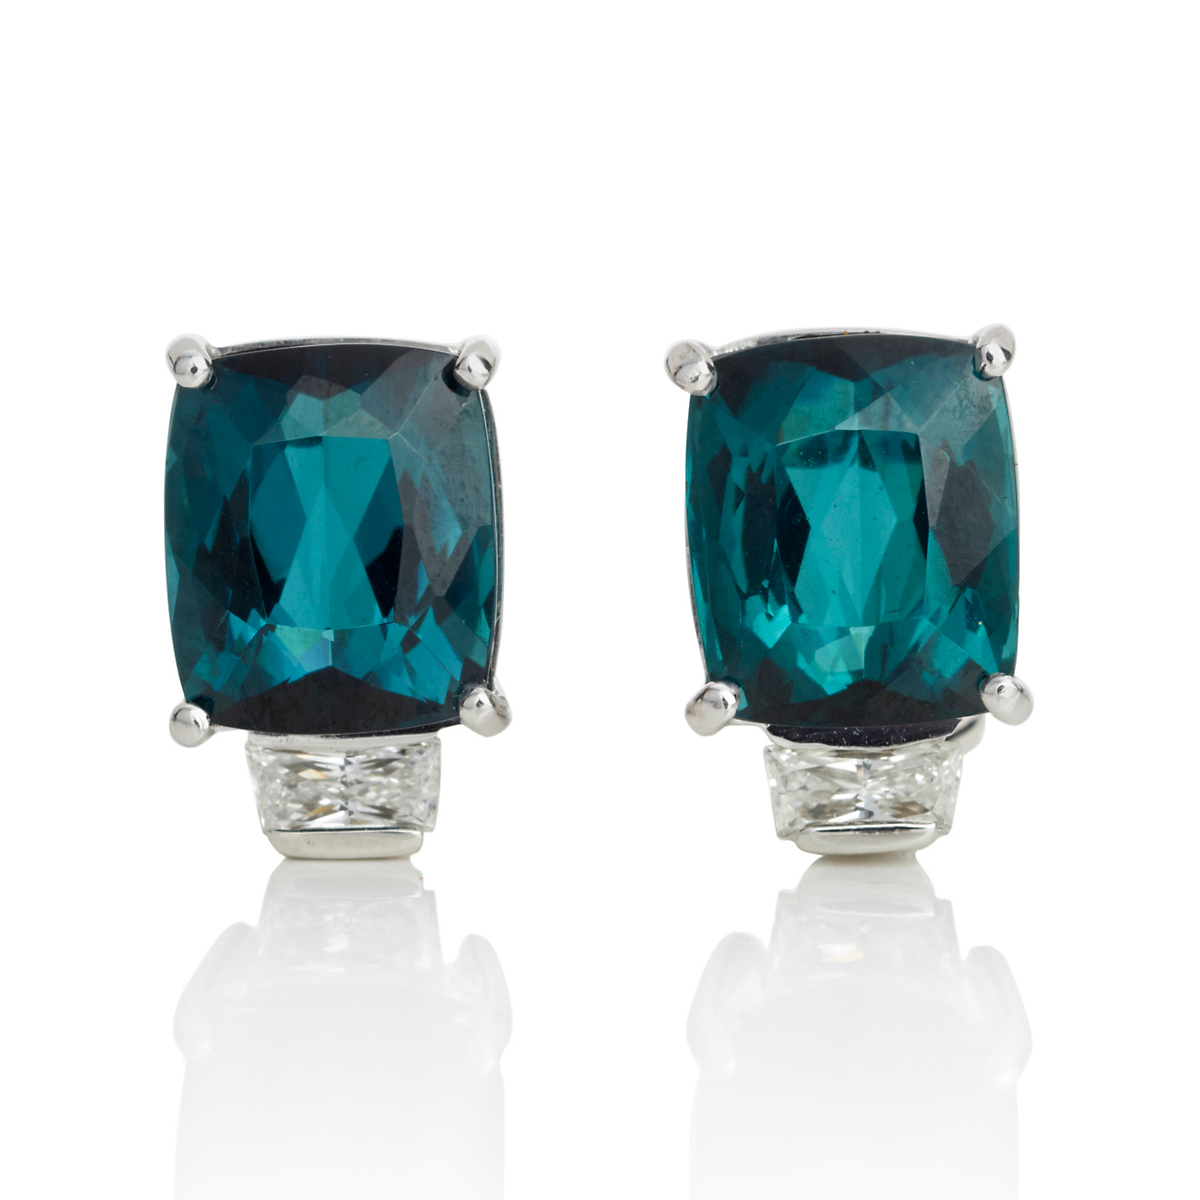 Gump's Blue Green Tourmaline & Diamond Earrings